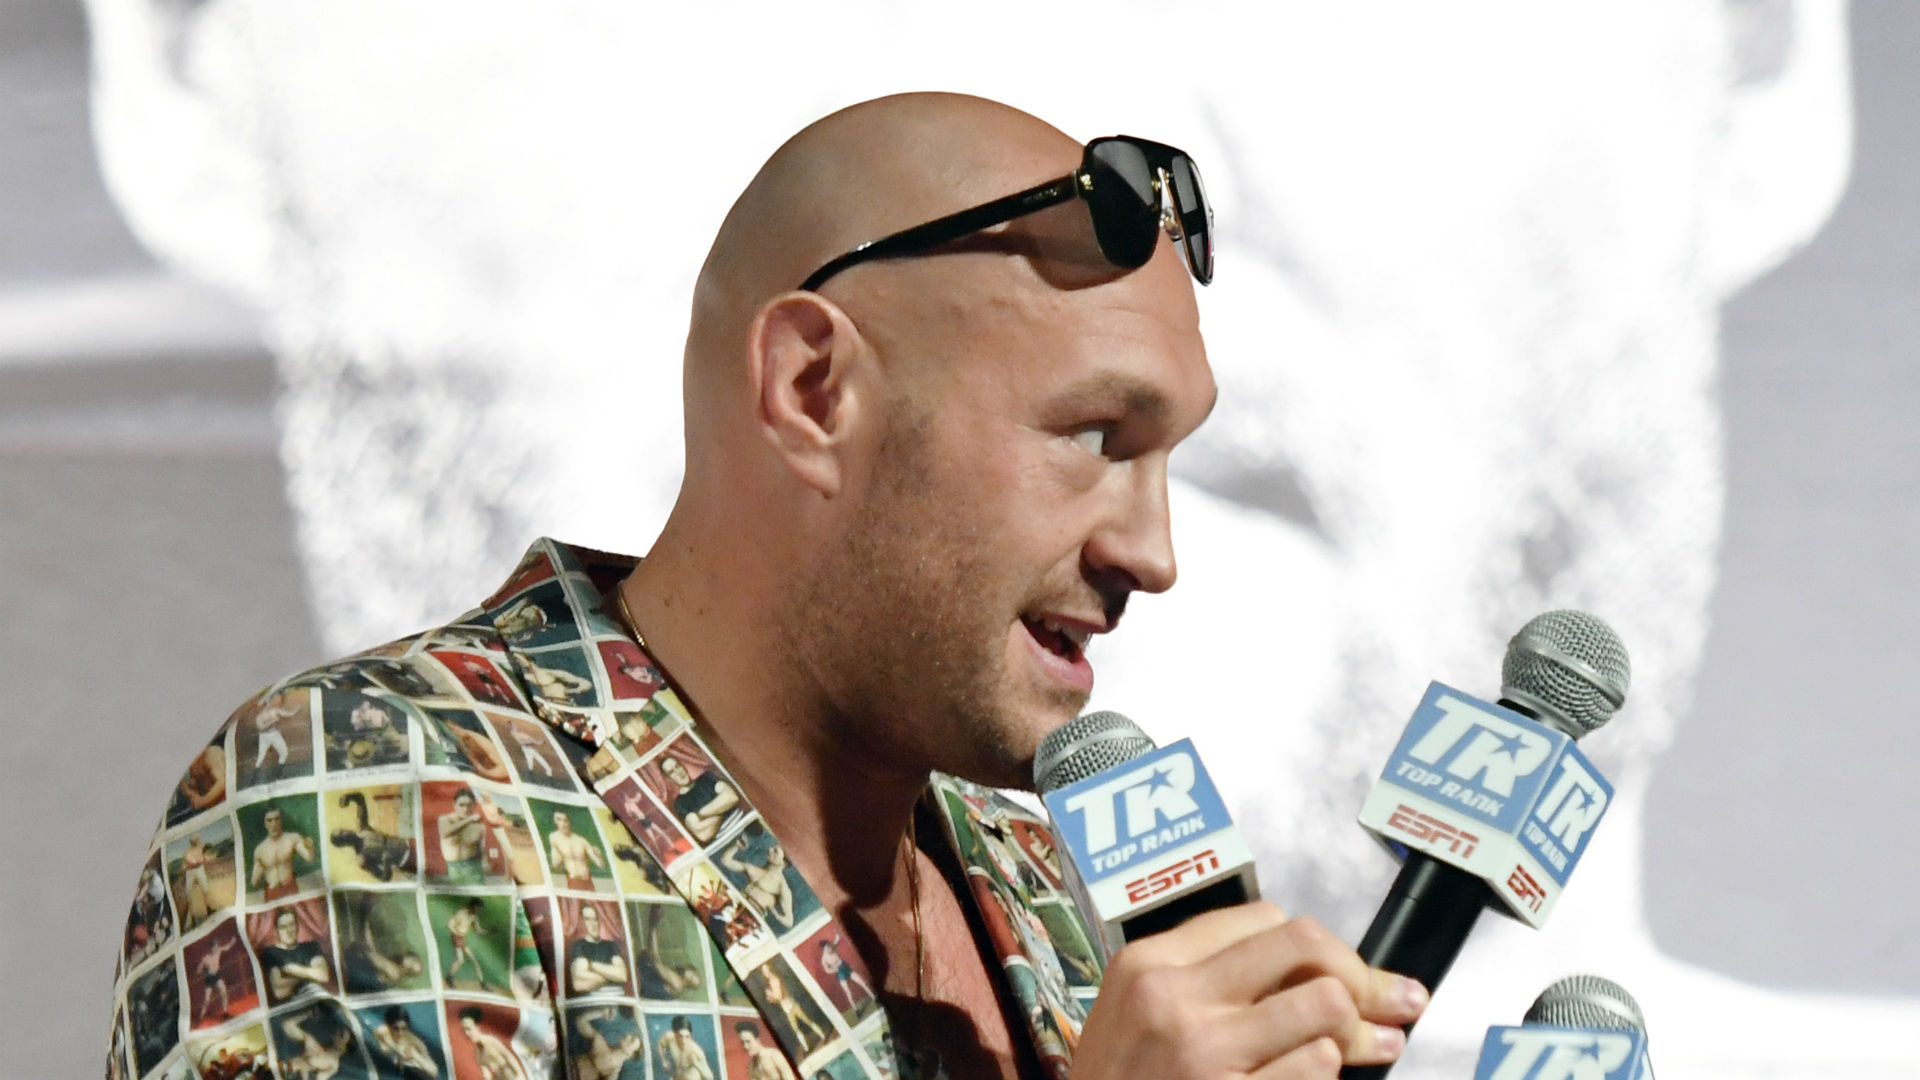 I look to inspire people - Fury offers positive message ahead of Schwarz fight